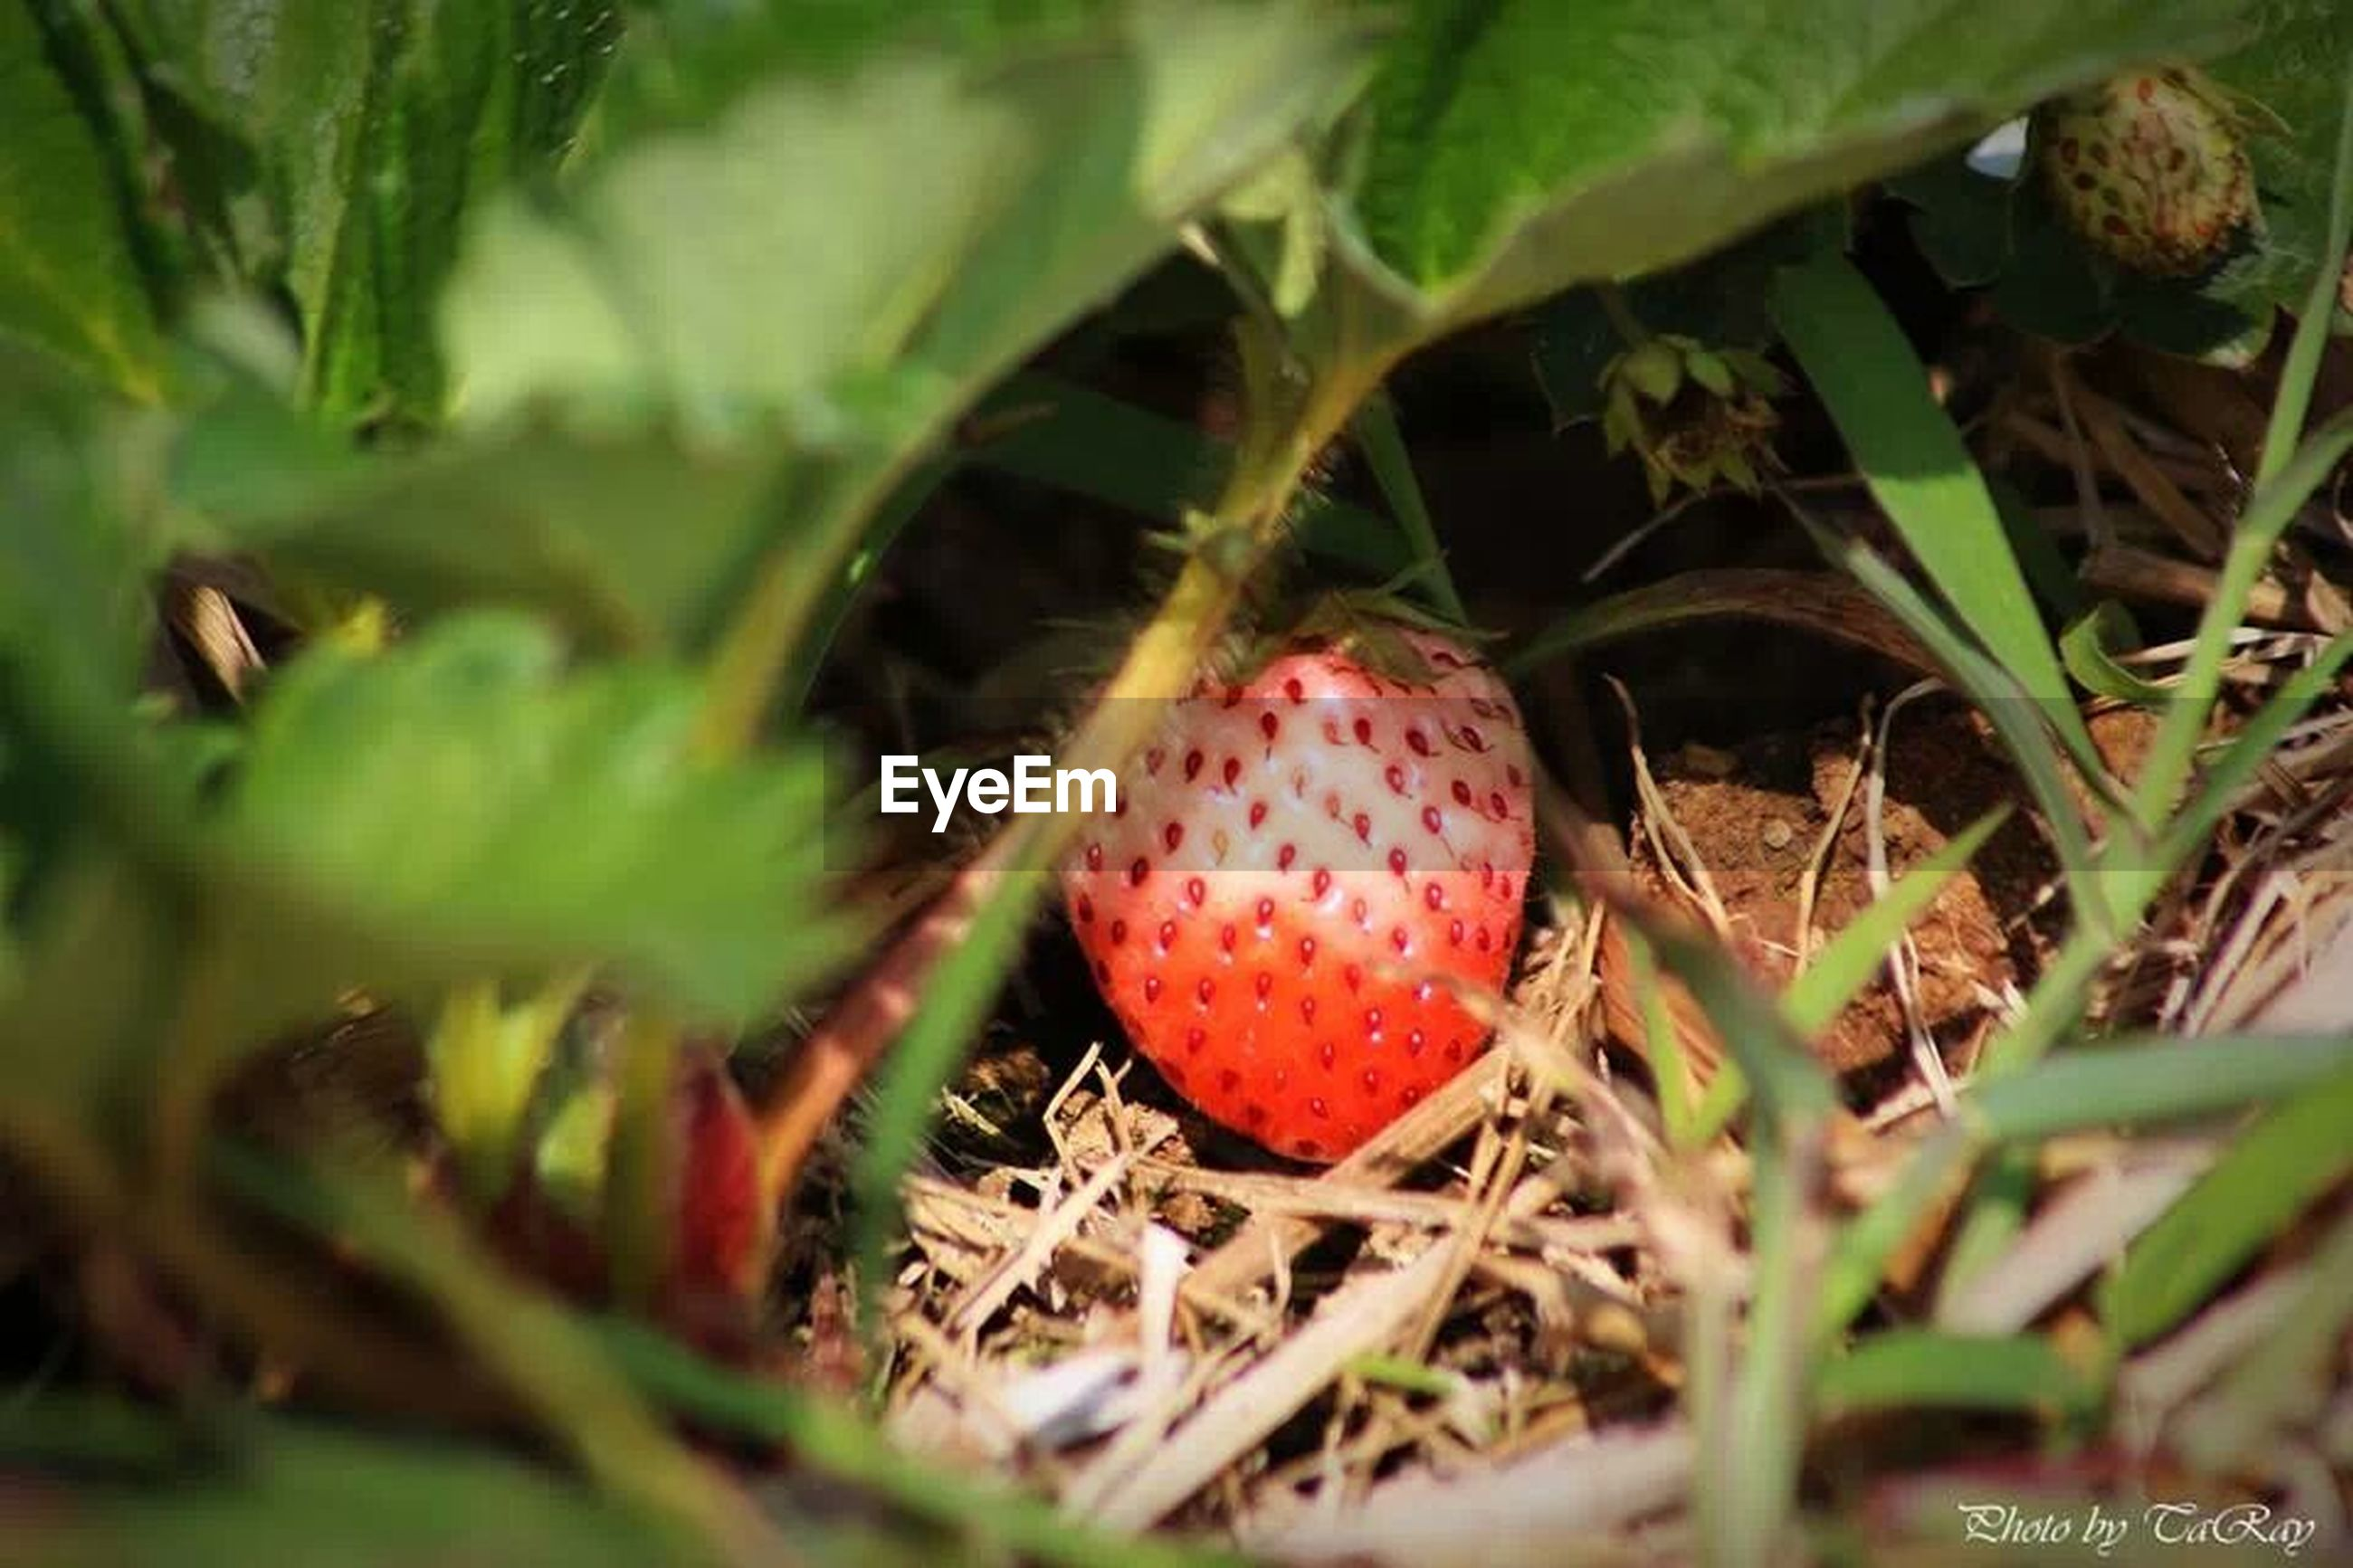 red, fruit, food and drink, close-up, growth, selective focus, plant, leaf, green color, field, food, nature, grass, spotted, ripe, focus on foreground, no people, berry fruit, outdoors, day